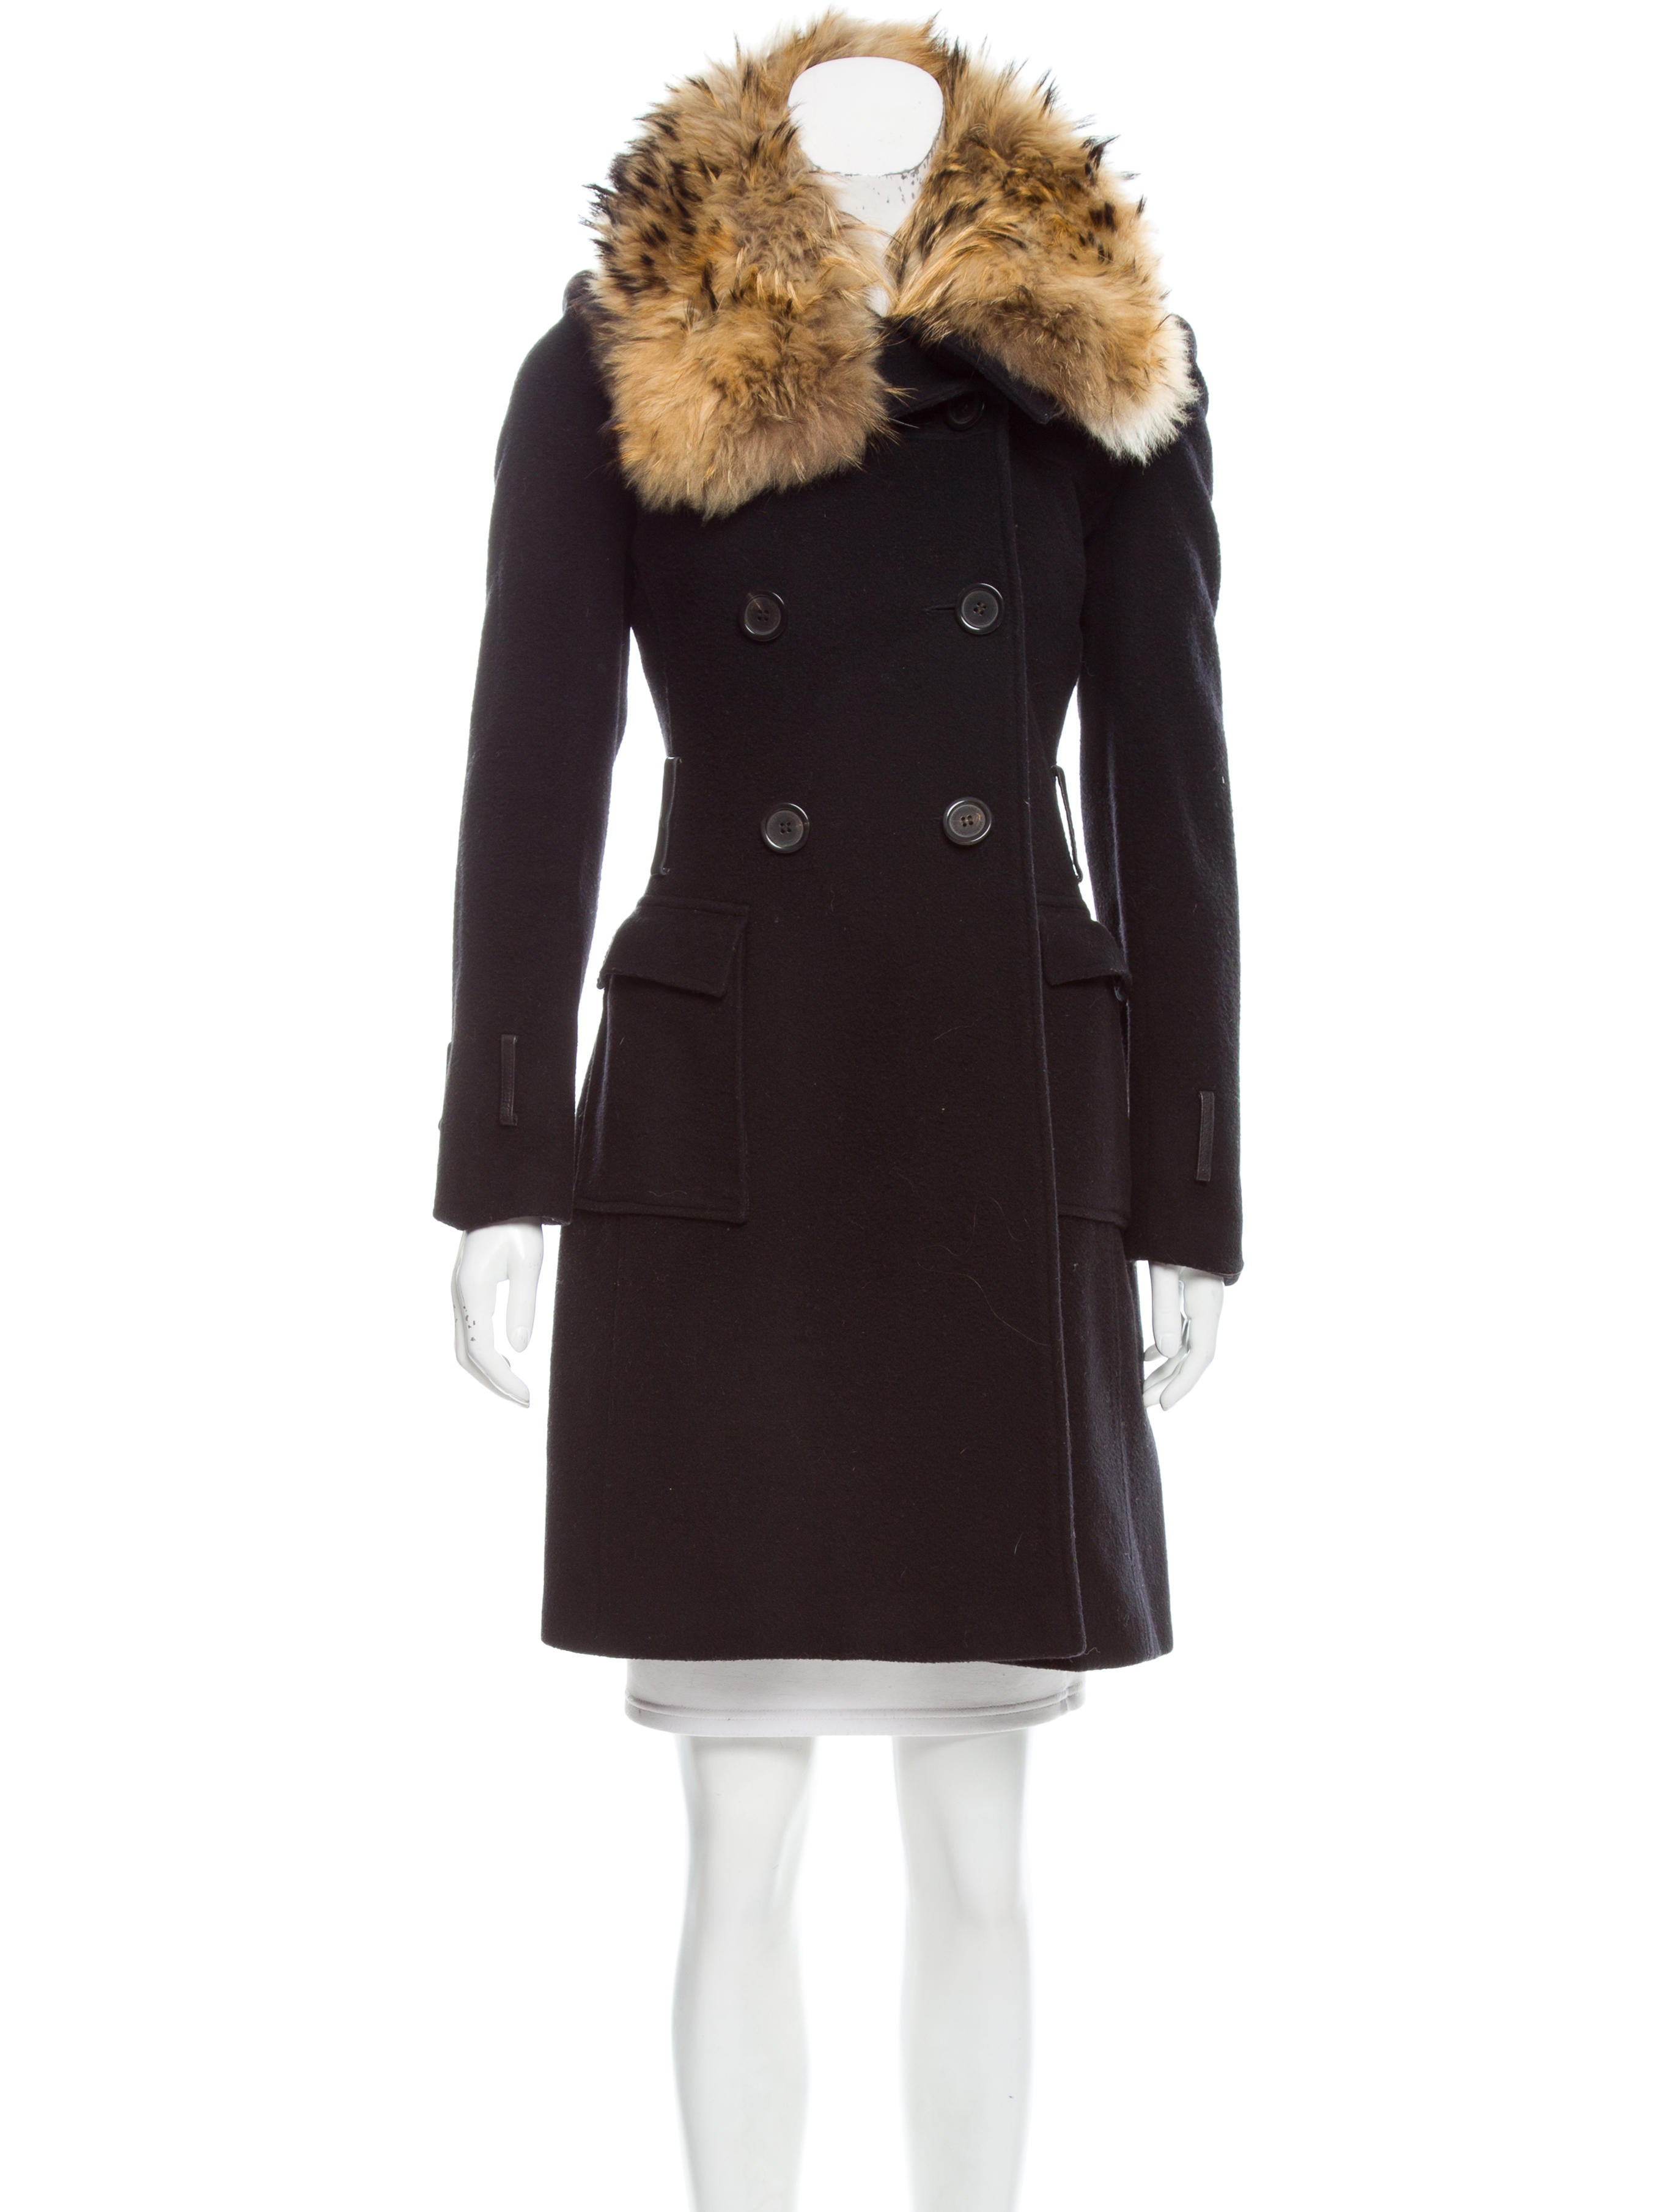 Perhaps a suede coat with fox fur trim or a wool jacket with raccoon fur trim is more your style. Overland takes great pride in carrying an array of women's fur-trimmed coats to meet every need. Remember to shop our alpaca wool capes with fox fur trim, microfiber coats with fur trim, and lambskin leather jackets with coyote fur trim.